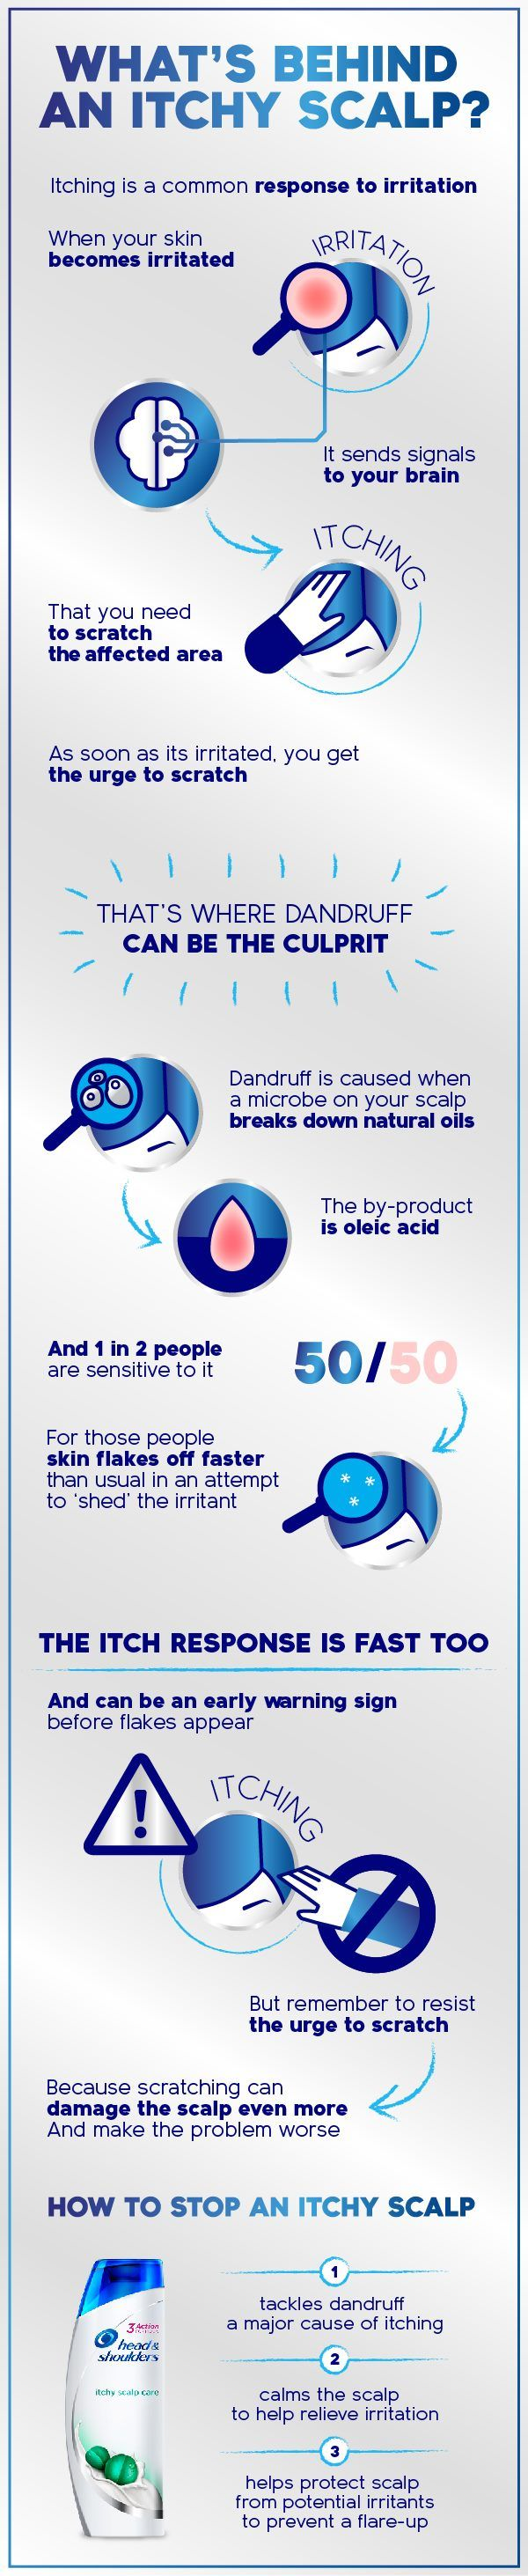 ItchyScalp infographic with product